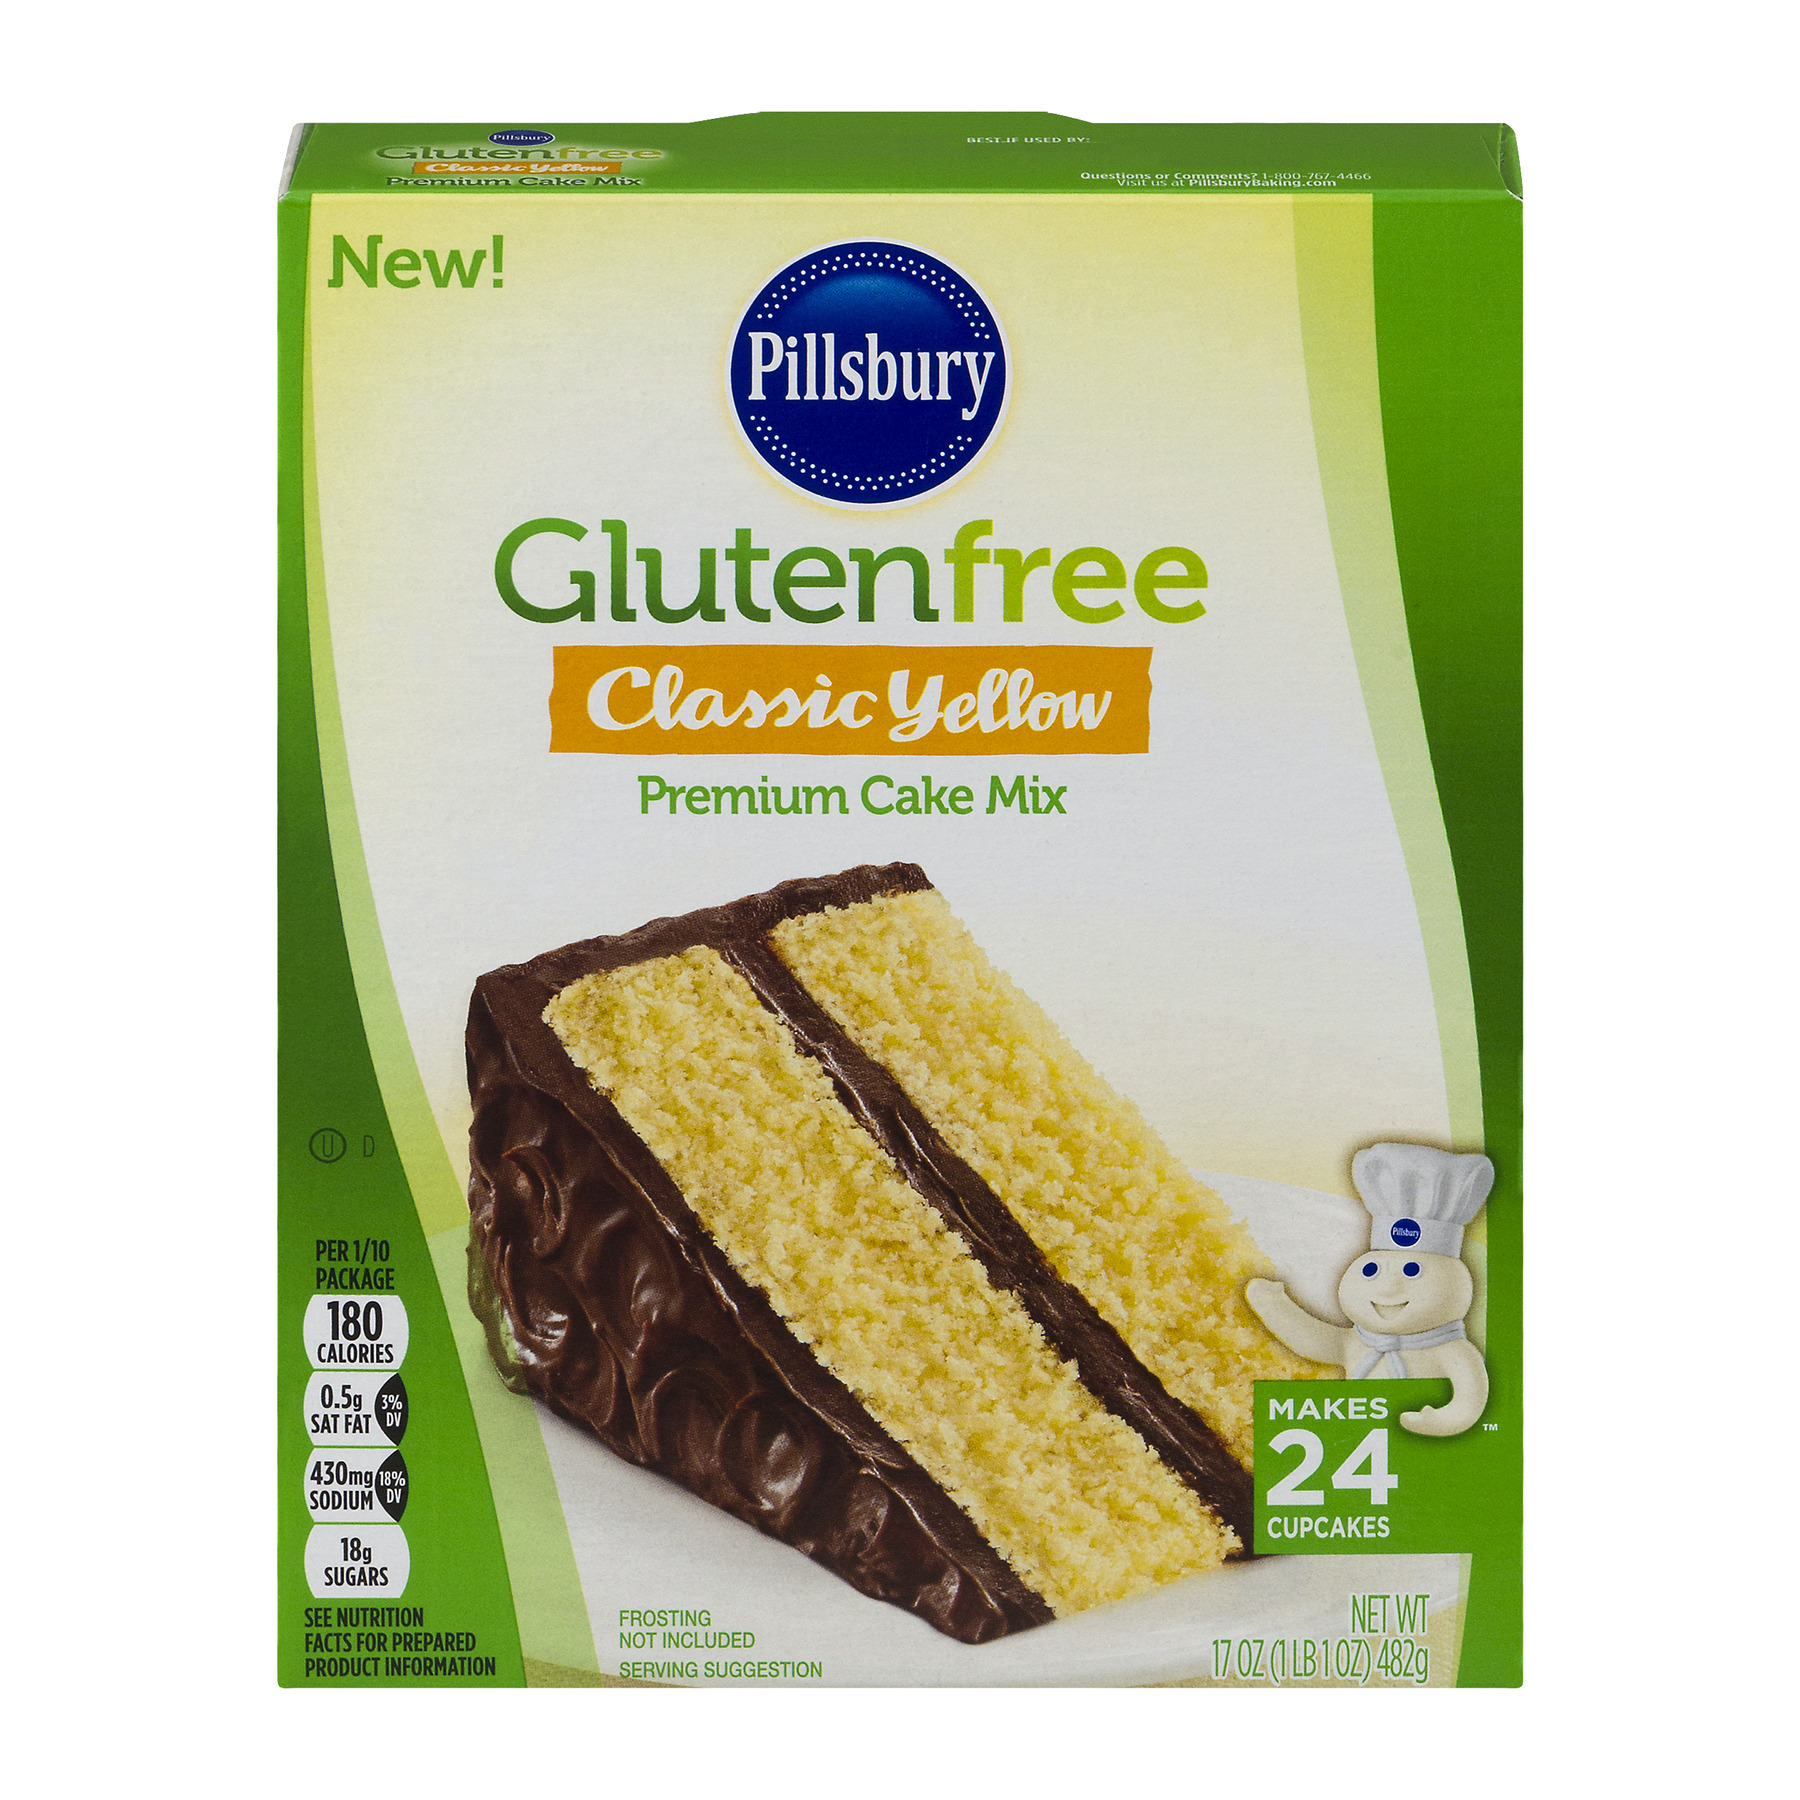 Pillsbury Gluten Free Classic Yellow Premium Cake Mix, 17.0 OZ